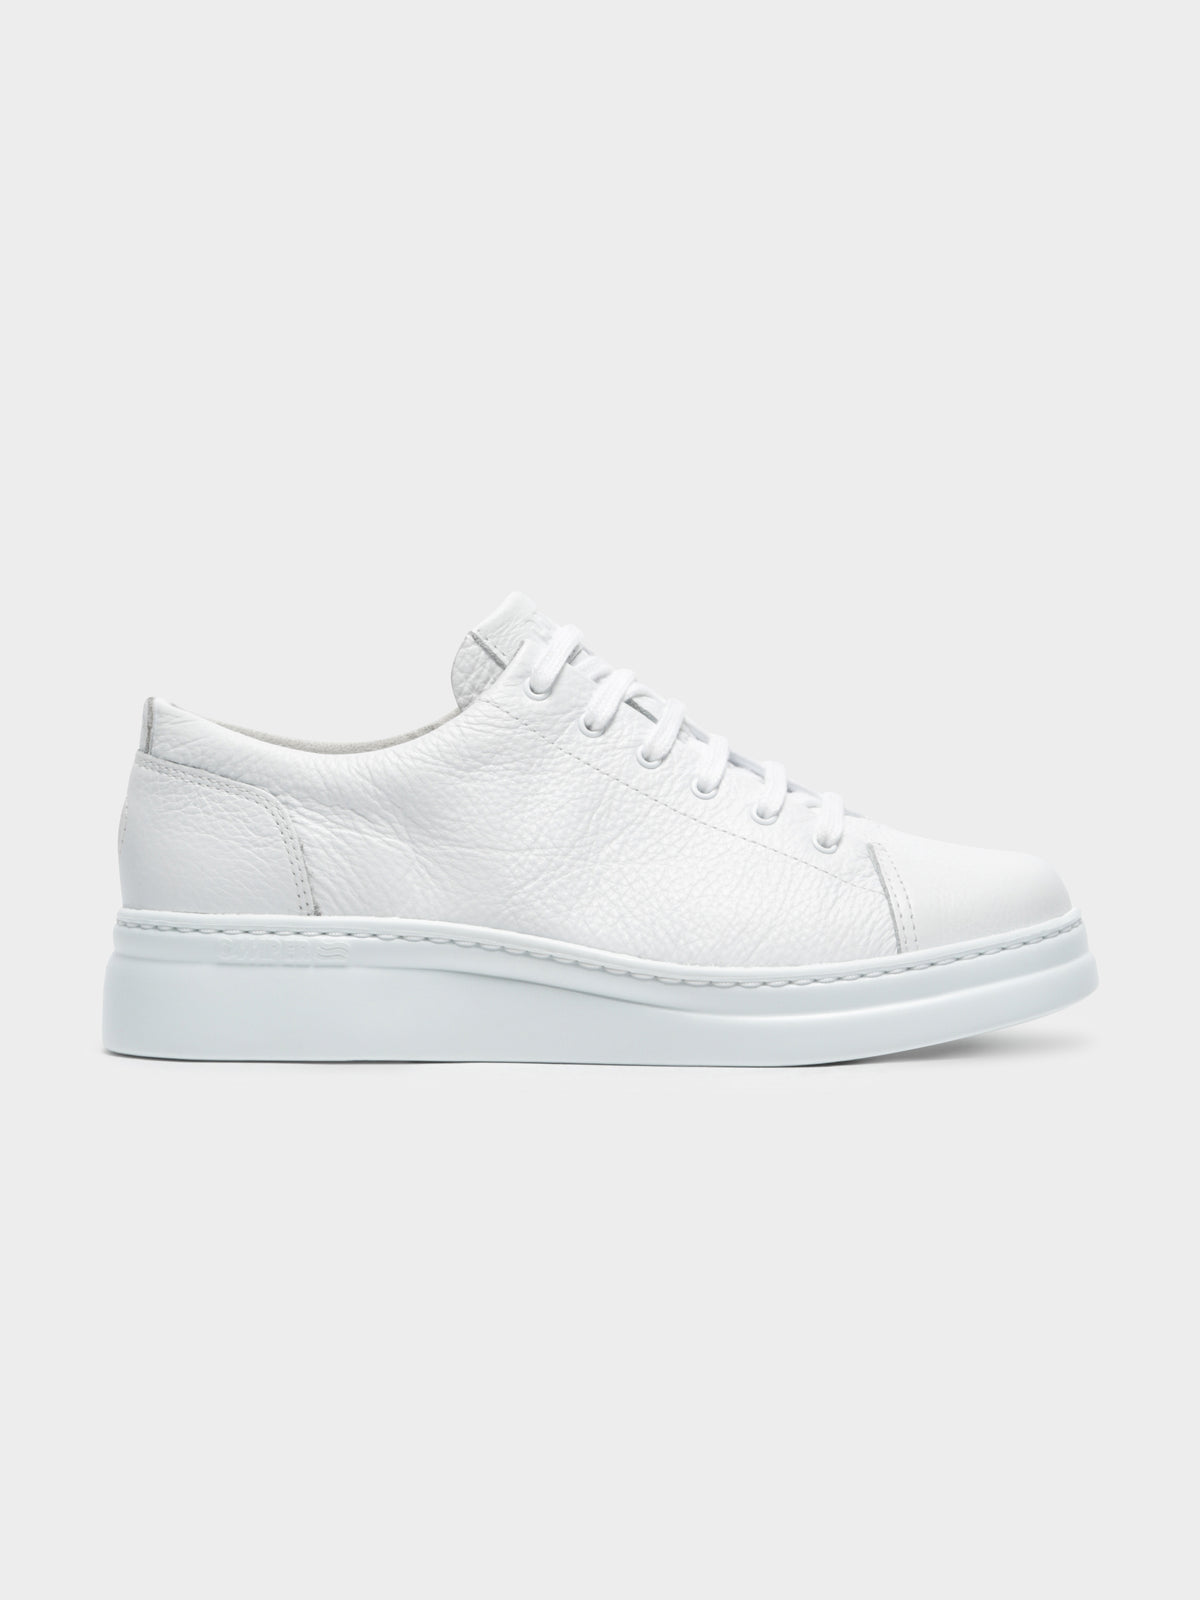 Womens Runner Up Sneakers in White Natural